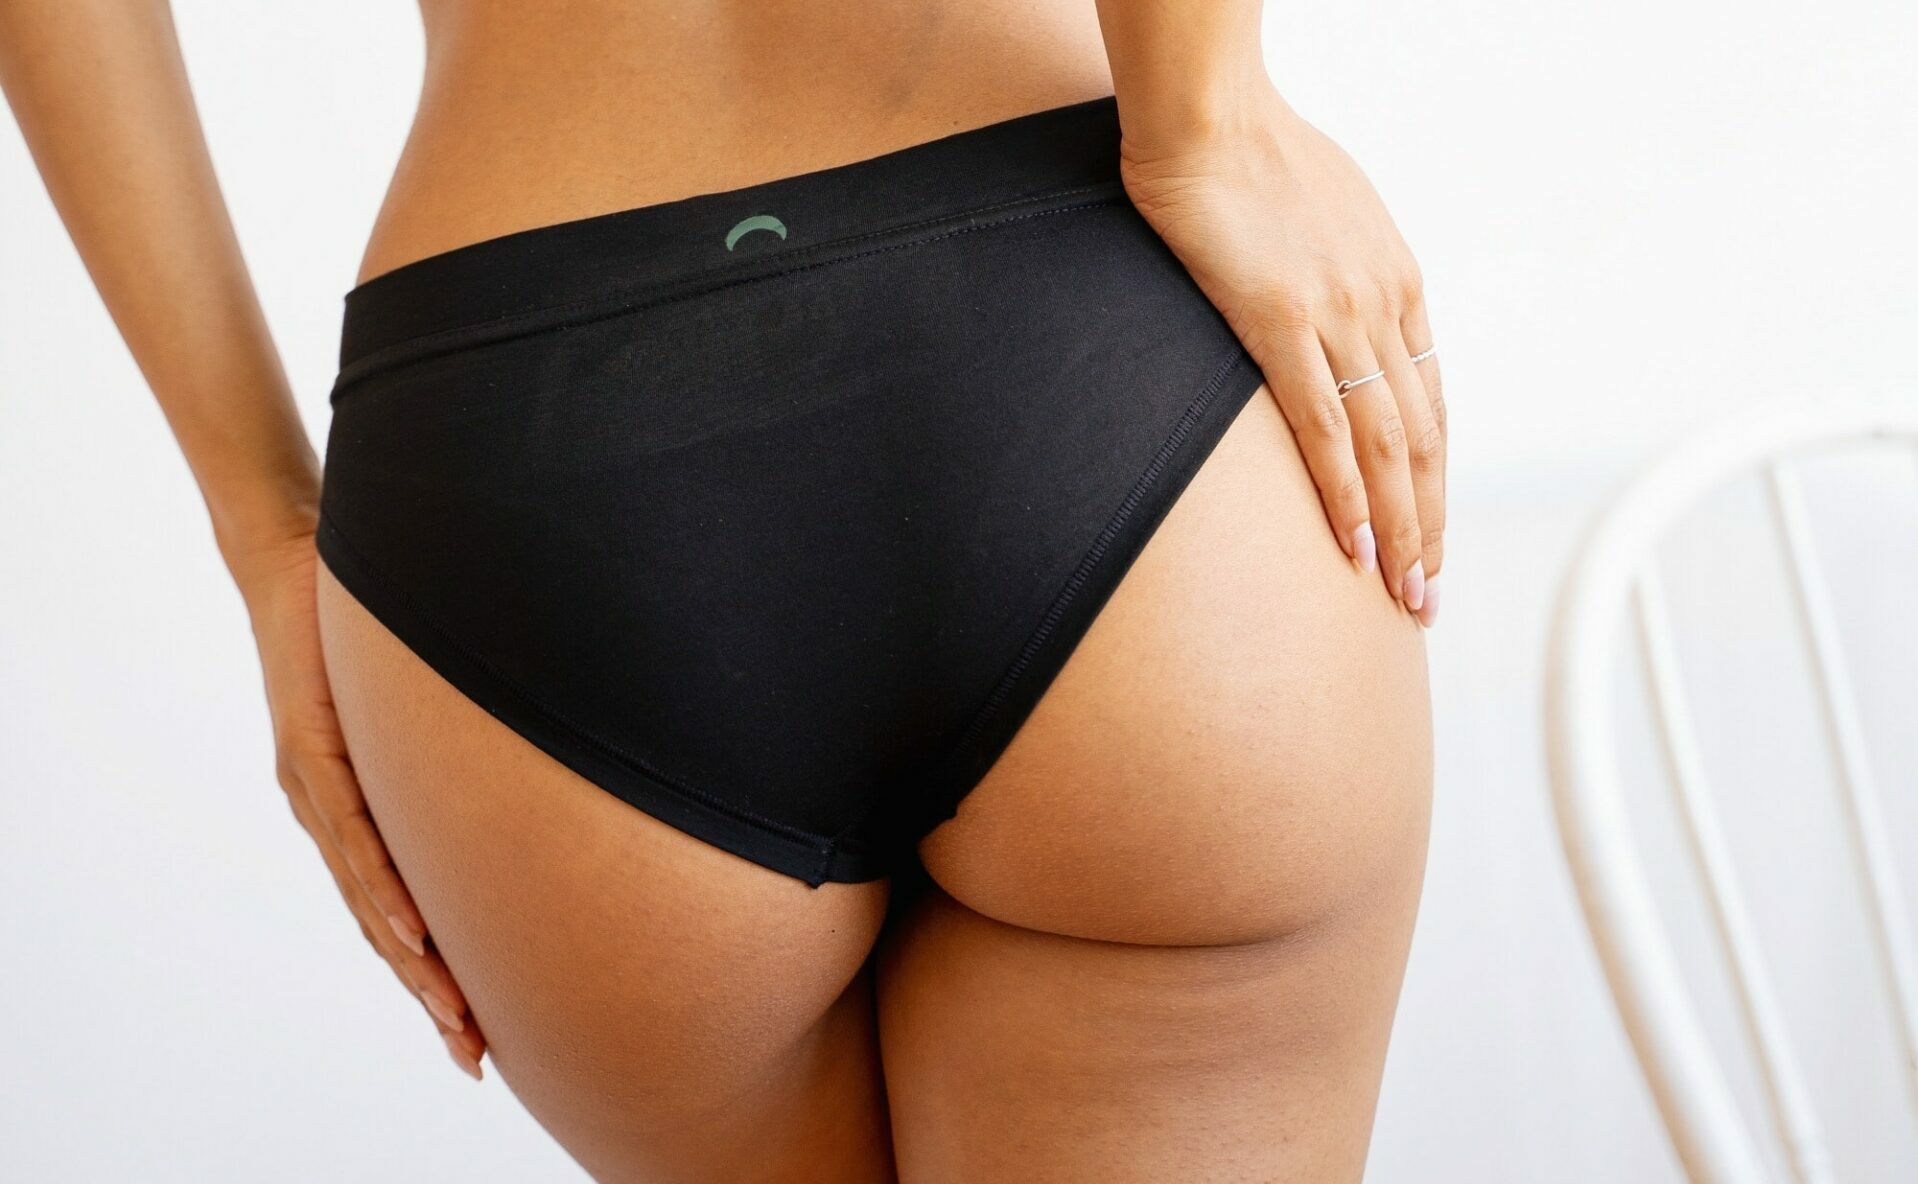 13 Best Underwear for Working Out (Chafe-Free Exercise)